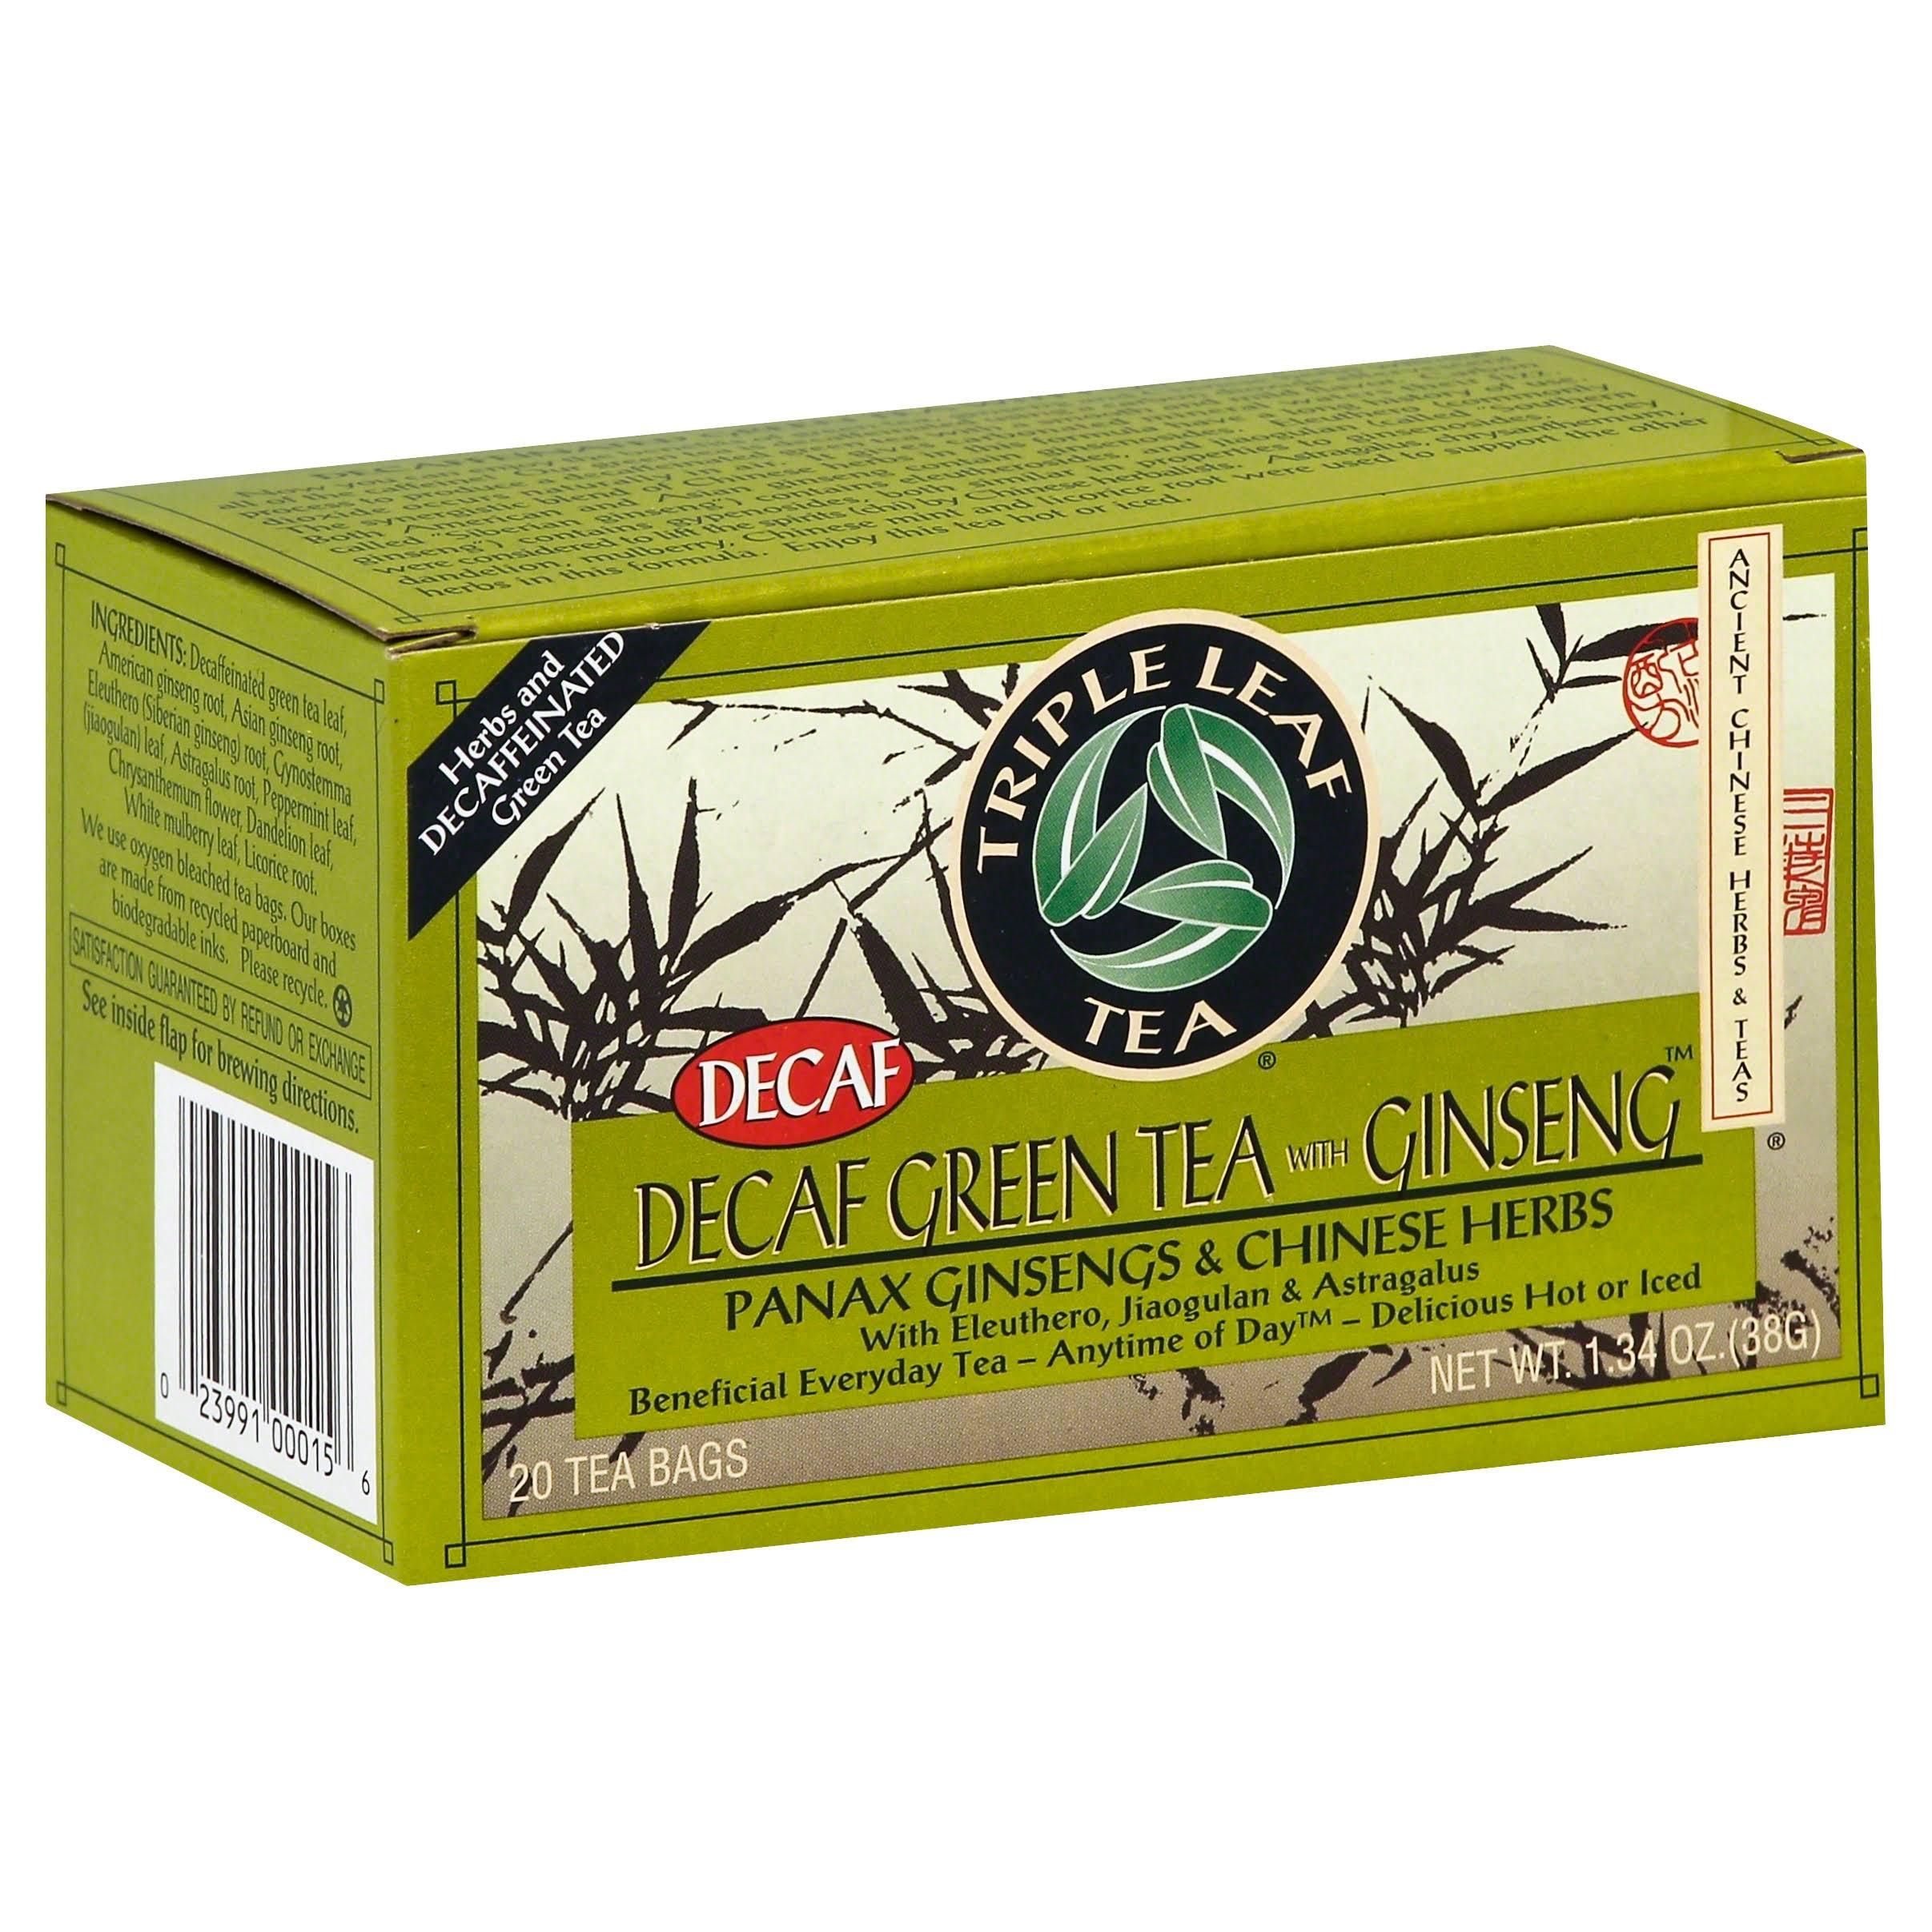 Triple Leaf Tea Decaf Green Tea - Ginseng, 20 Bags, 40g